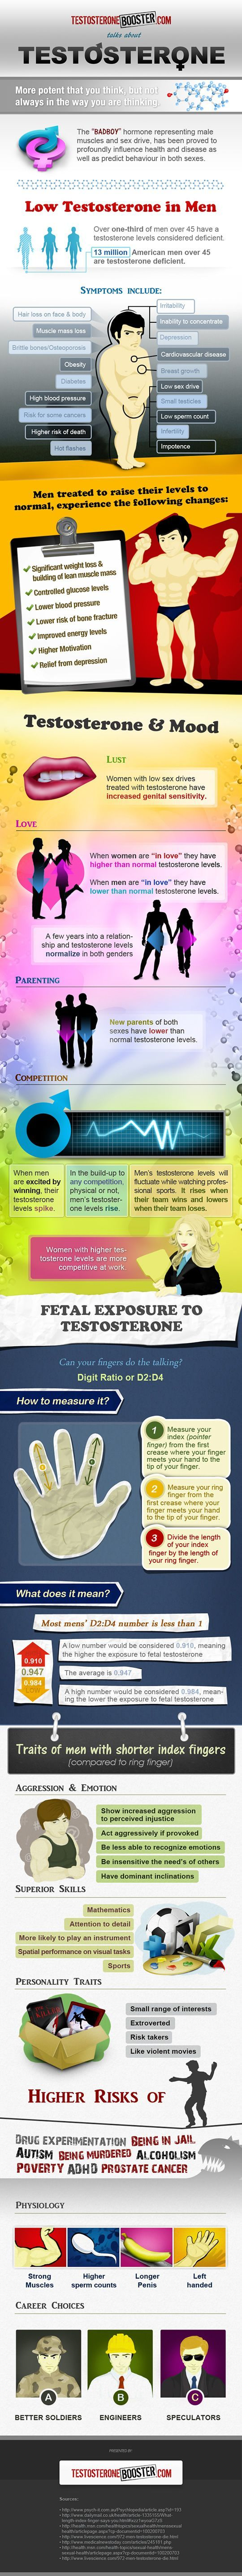 Testosterone: Potent But Not Always In The Way You Think fitness motivation, #healthy #fitness #fitspo